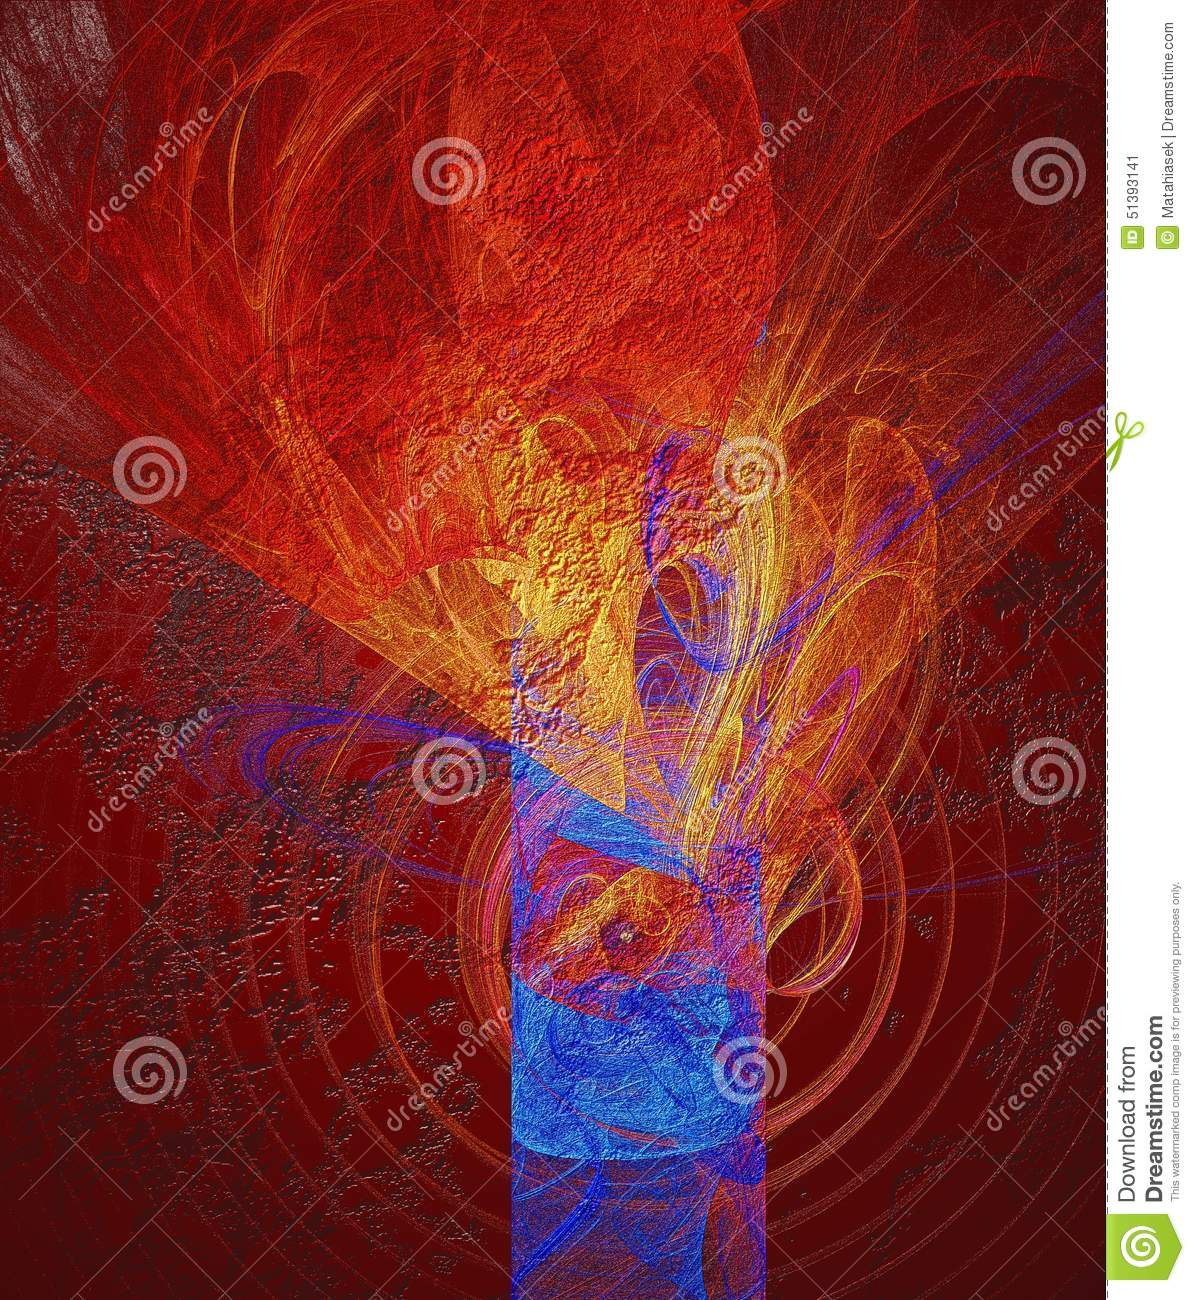 Abstract relief texture in red and blue